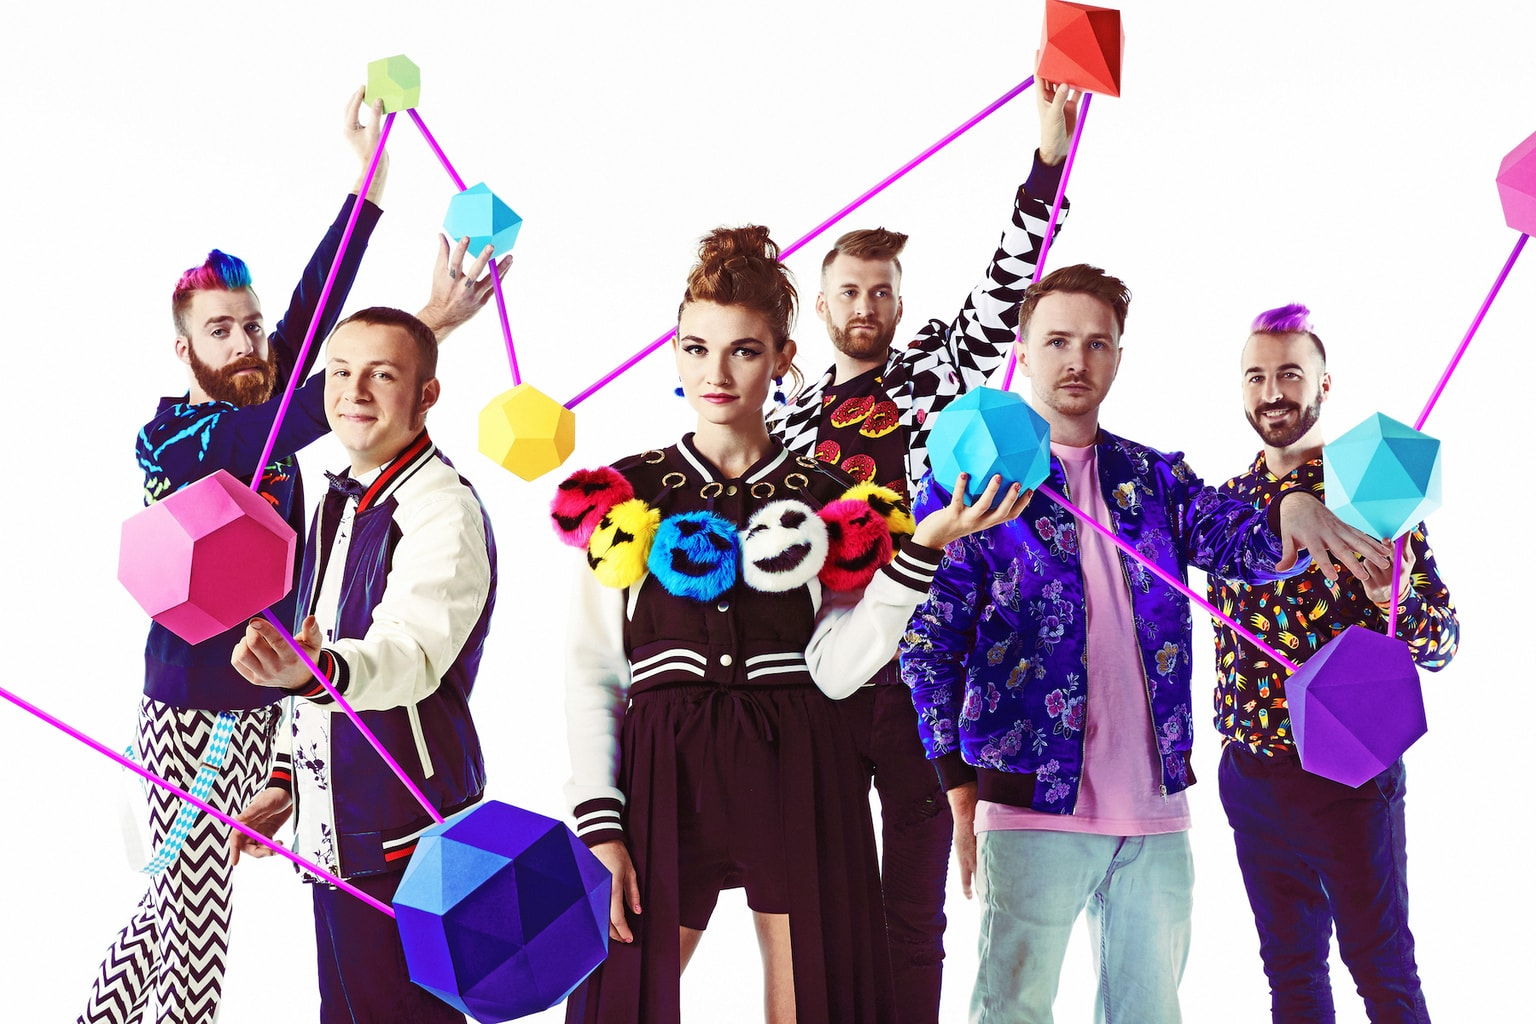 Misterwives band photo